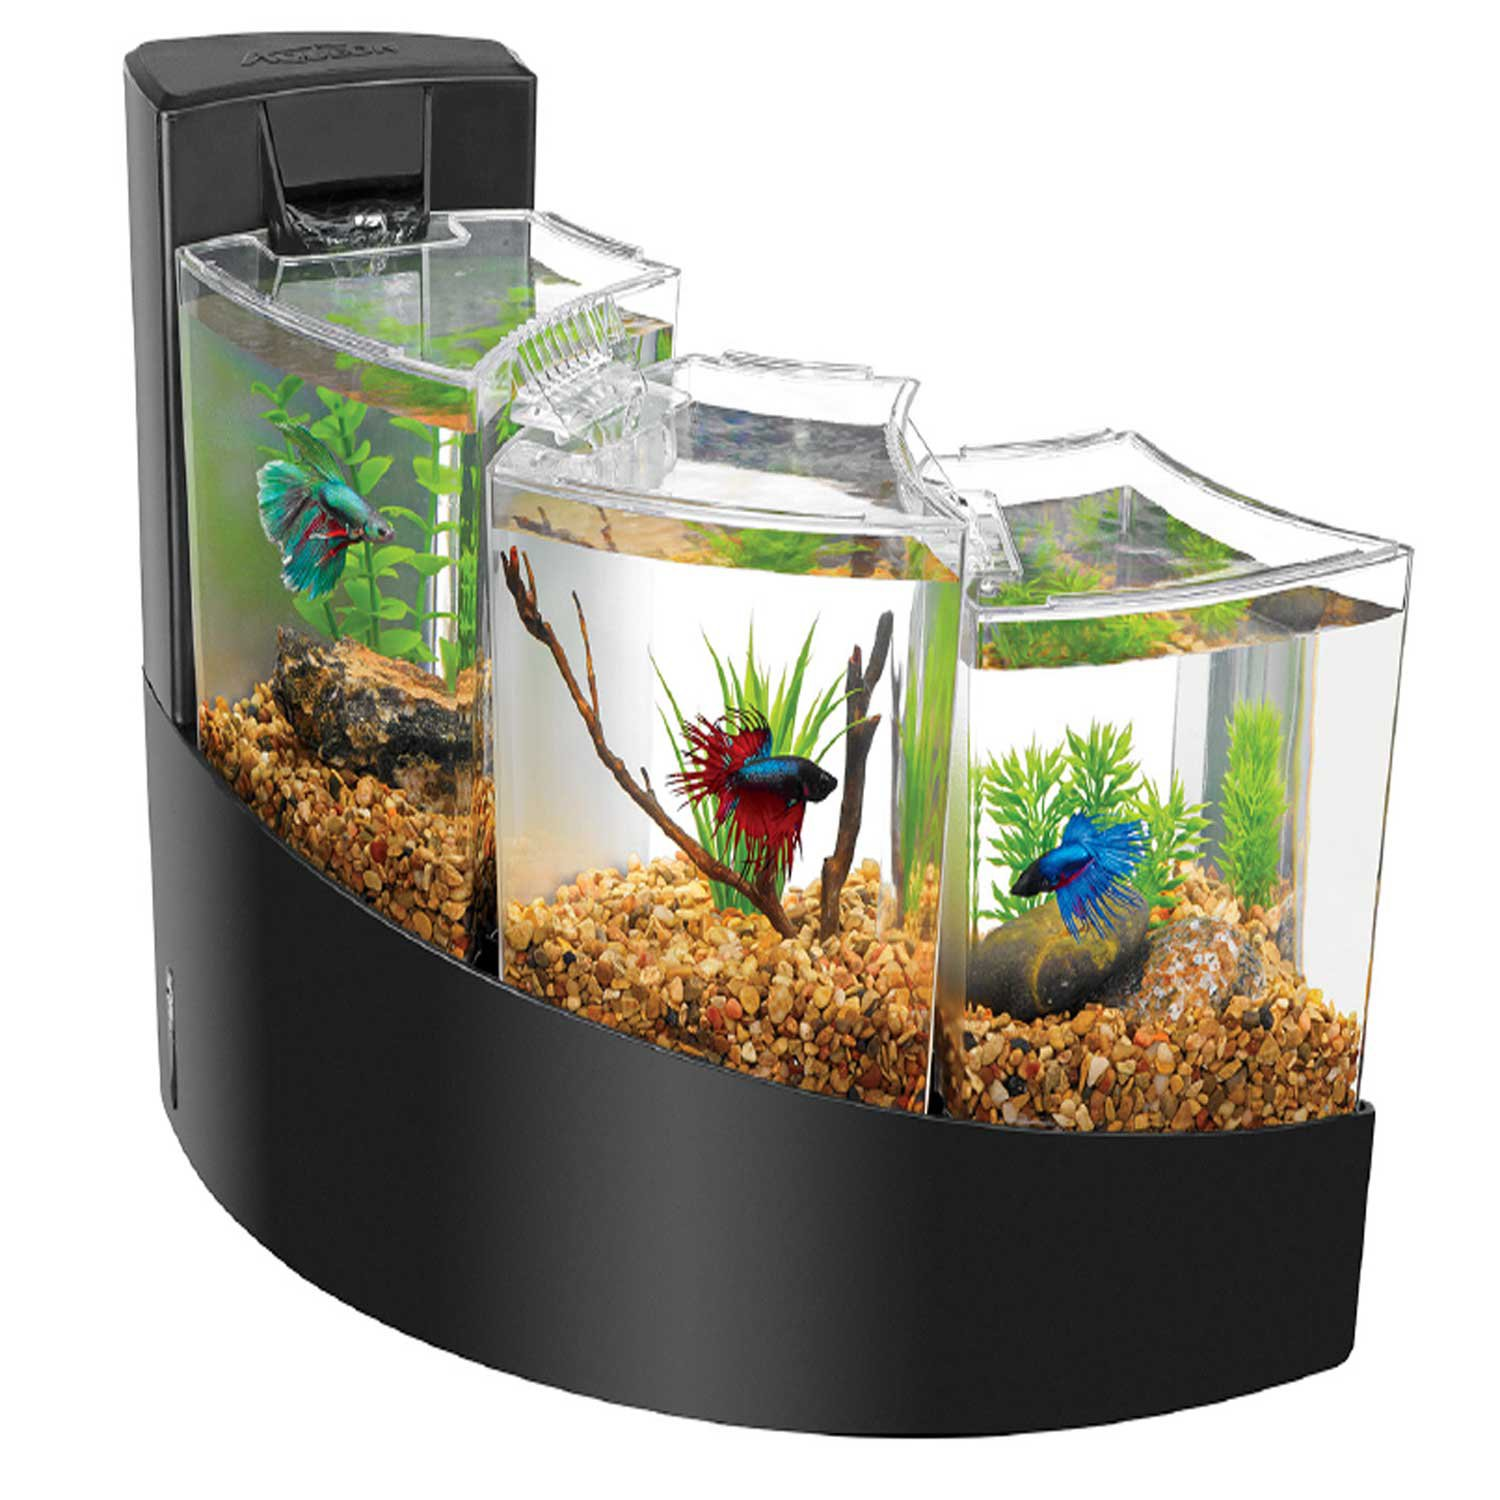 Aqueon glass aqueon kit betta falls black from for Aqueon fish tank